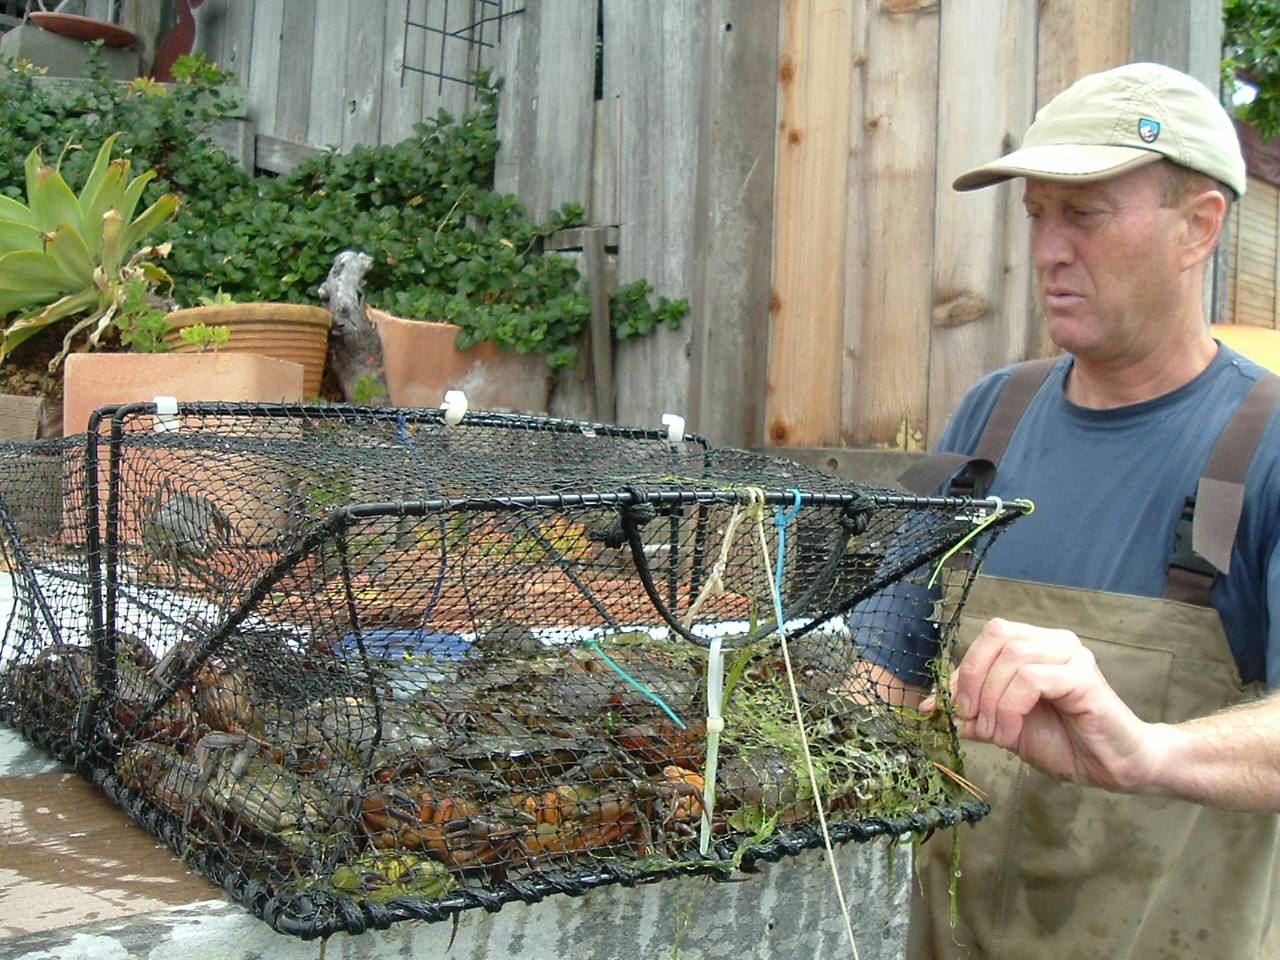 man holds cage full of invasive green crabs